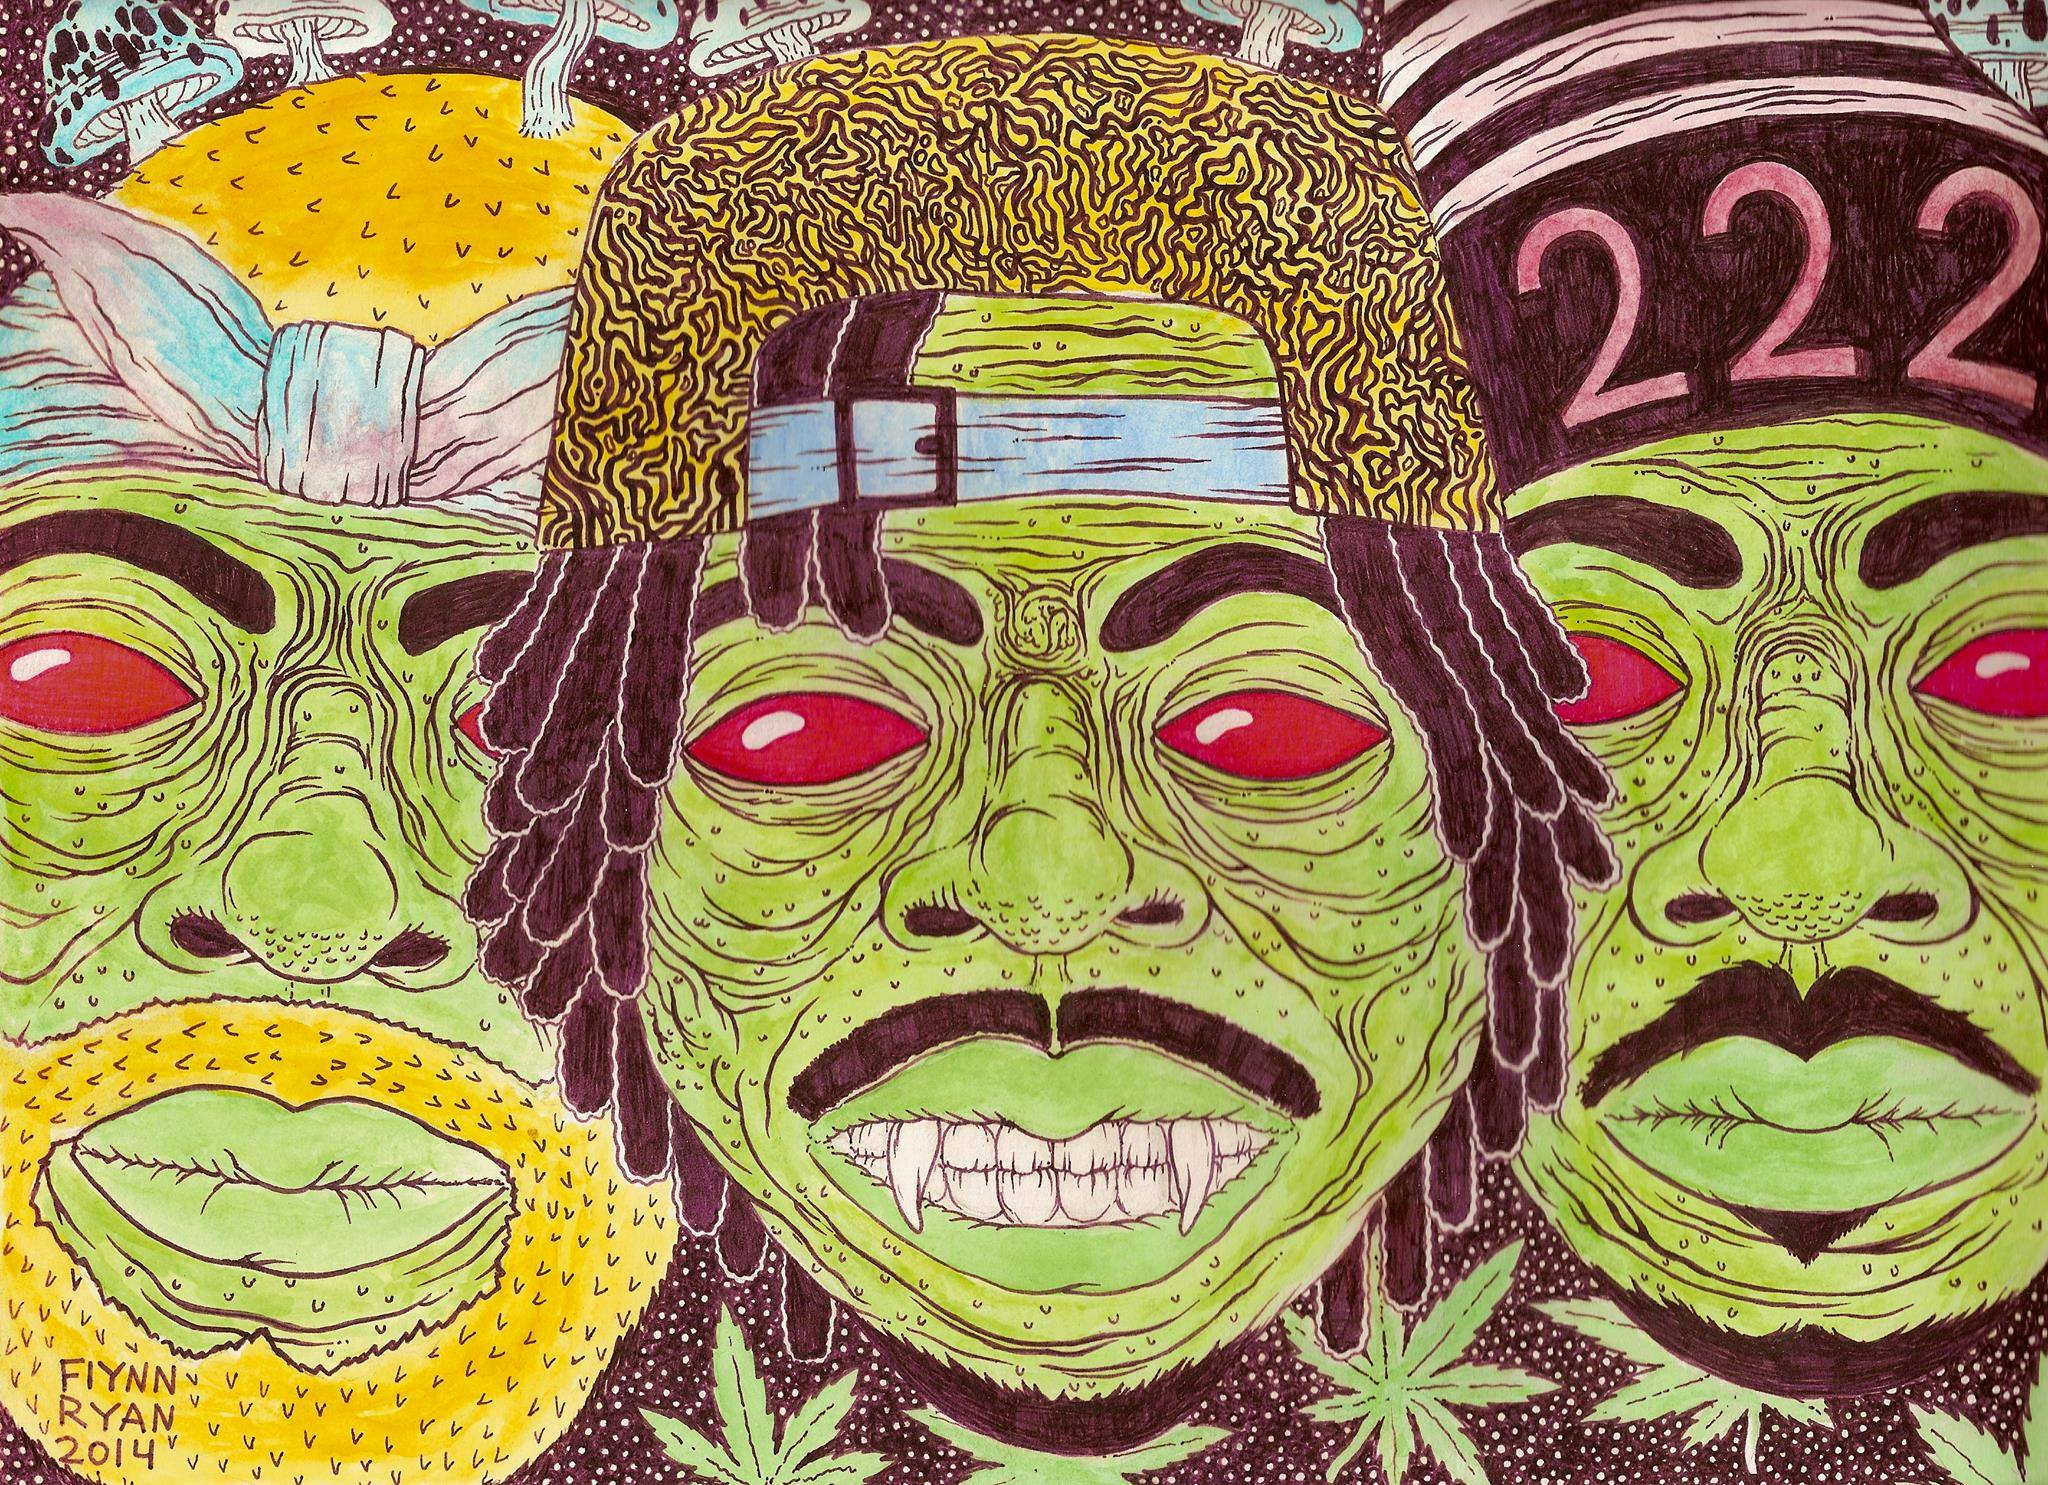 2048x1485 Flatbush zombies wallpaper Gallery